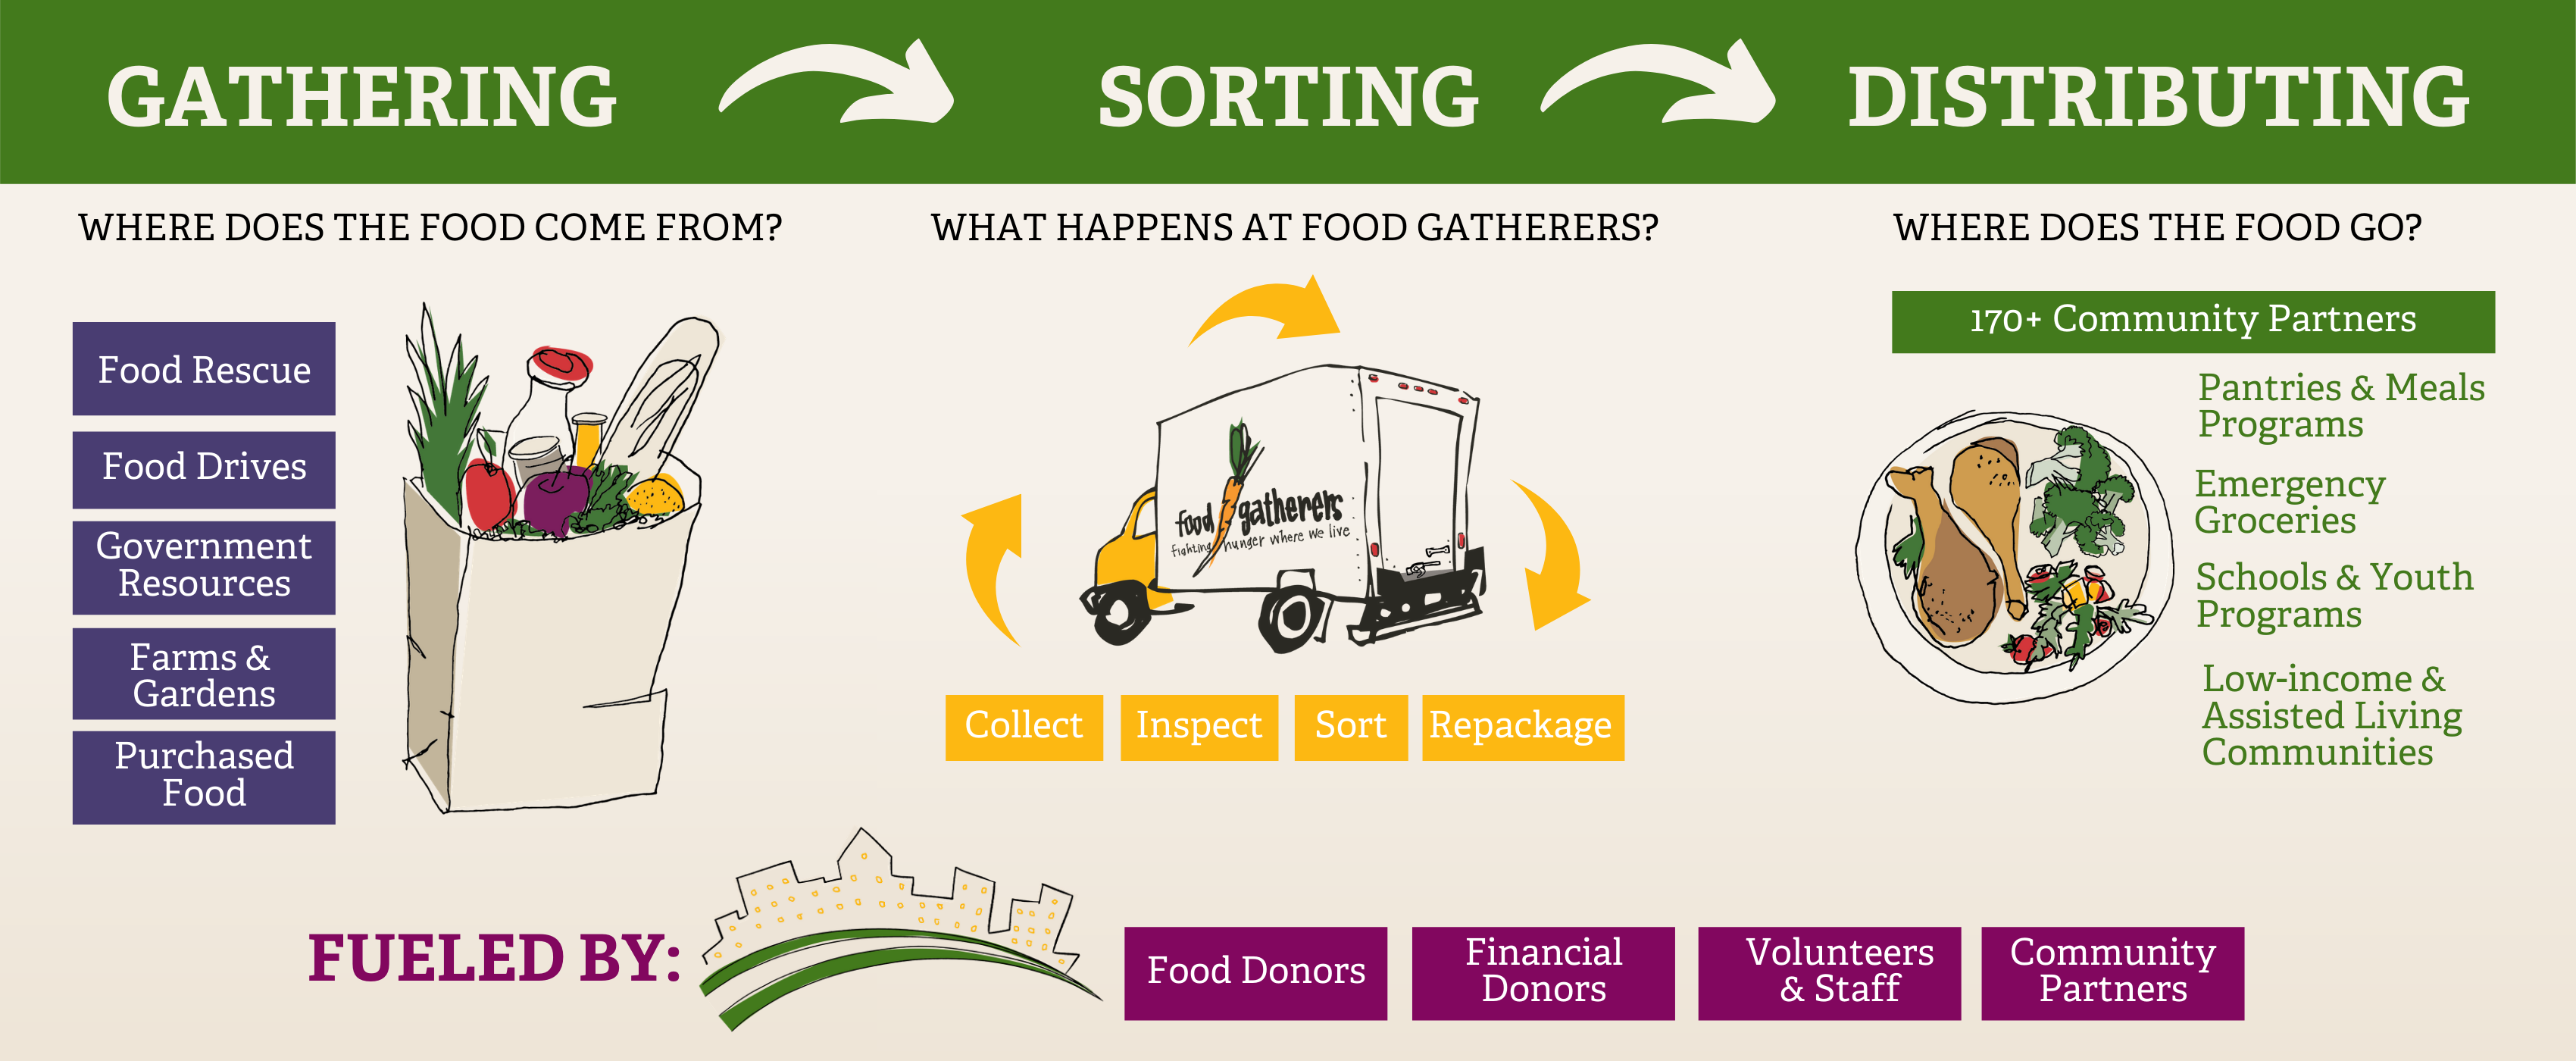 Infographic describing Food Gatherers' process of gathering, sorting, and distributing food.